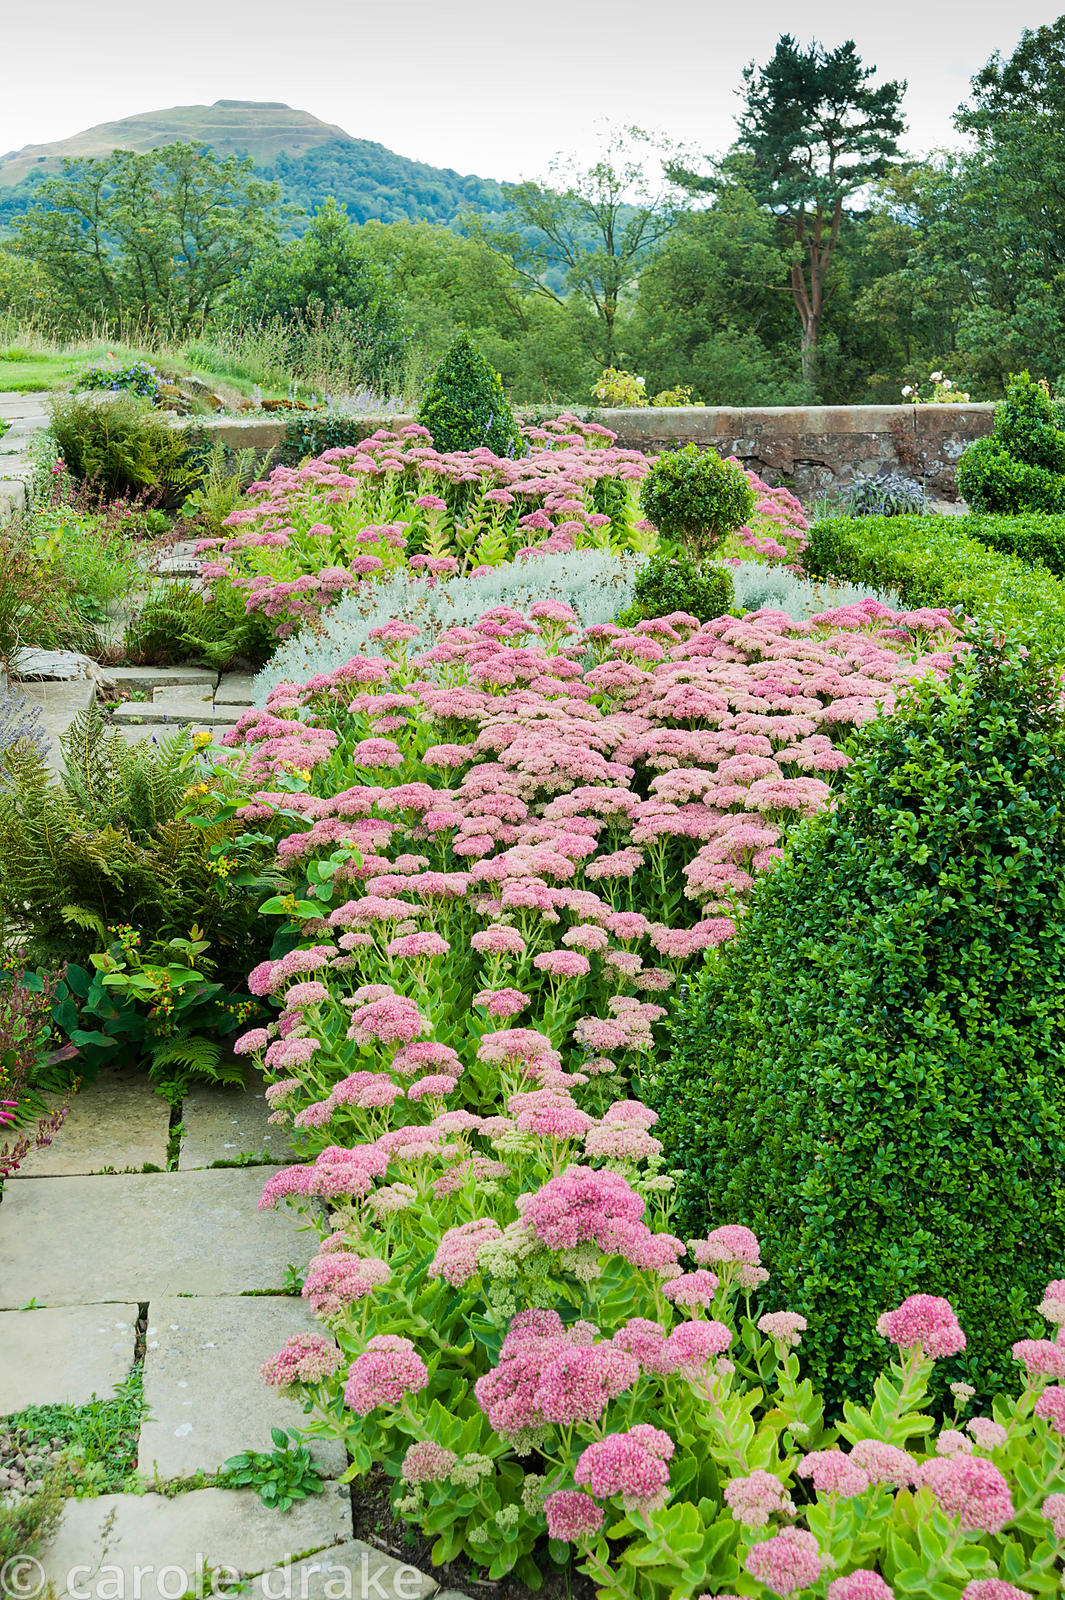 Terrace planted with box, Sedum 'Herbstfreude', santolina and Lavandula angustifolia 'Hidcote', with the British Camp or Here...